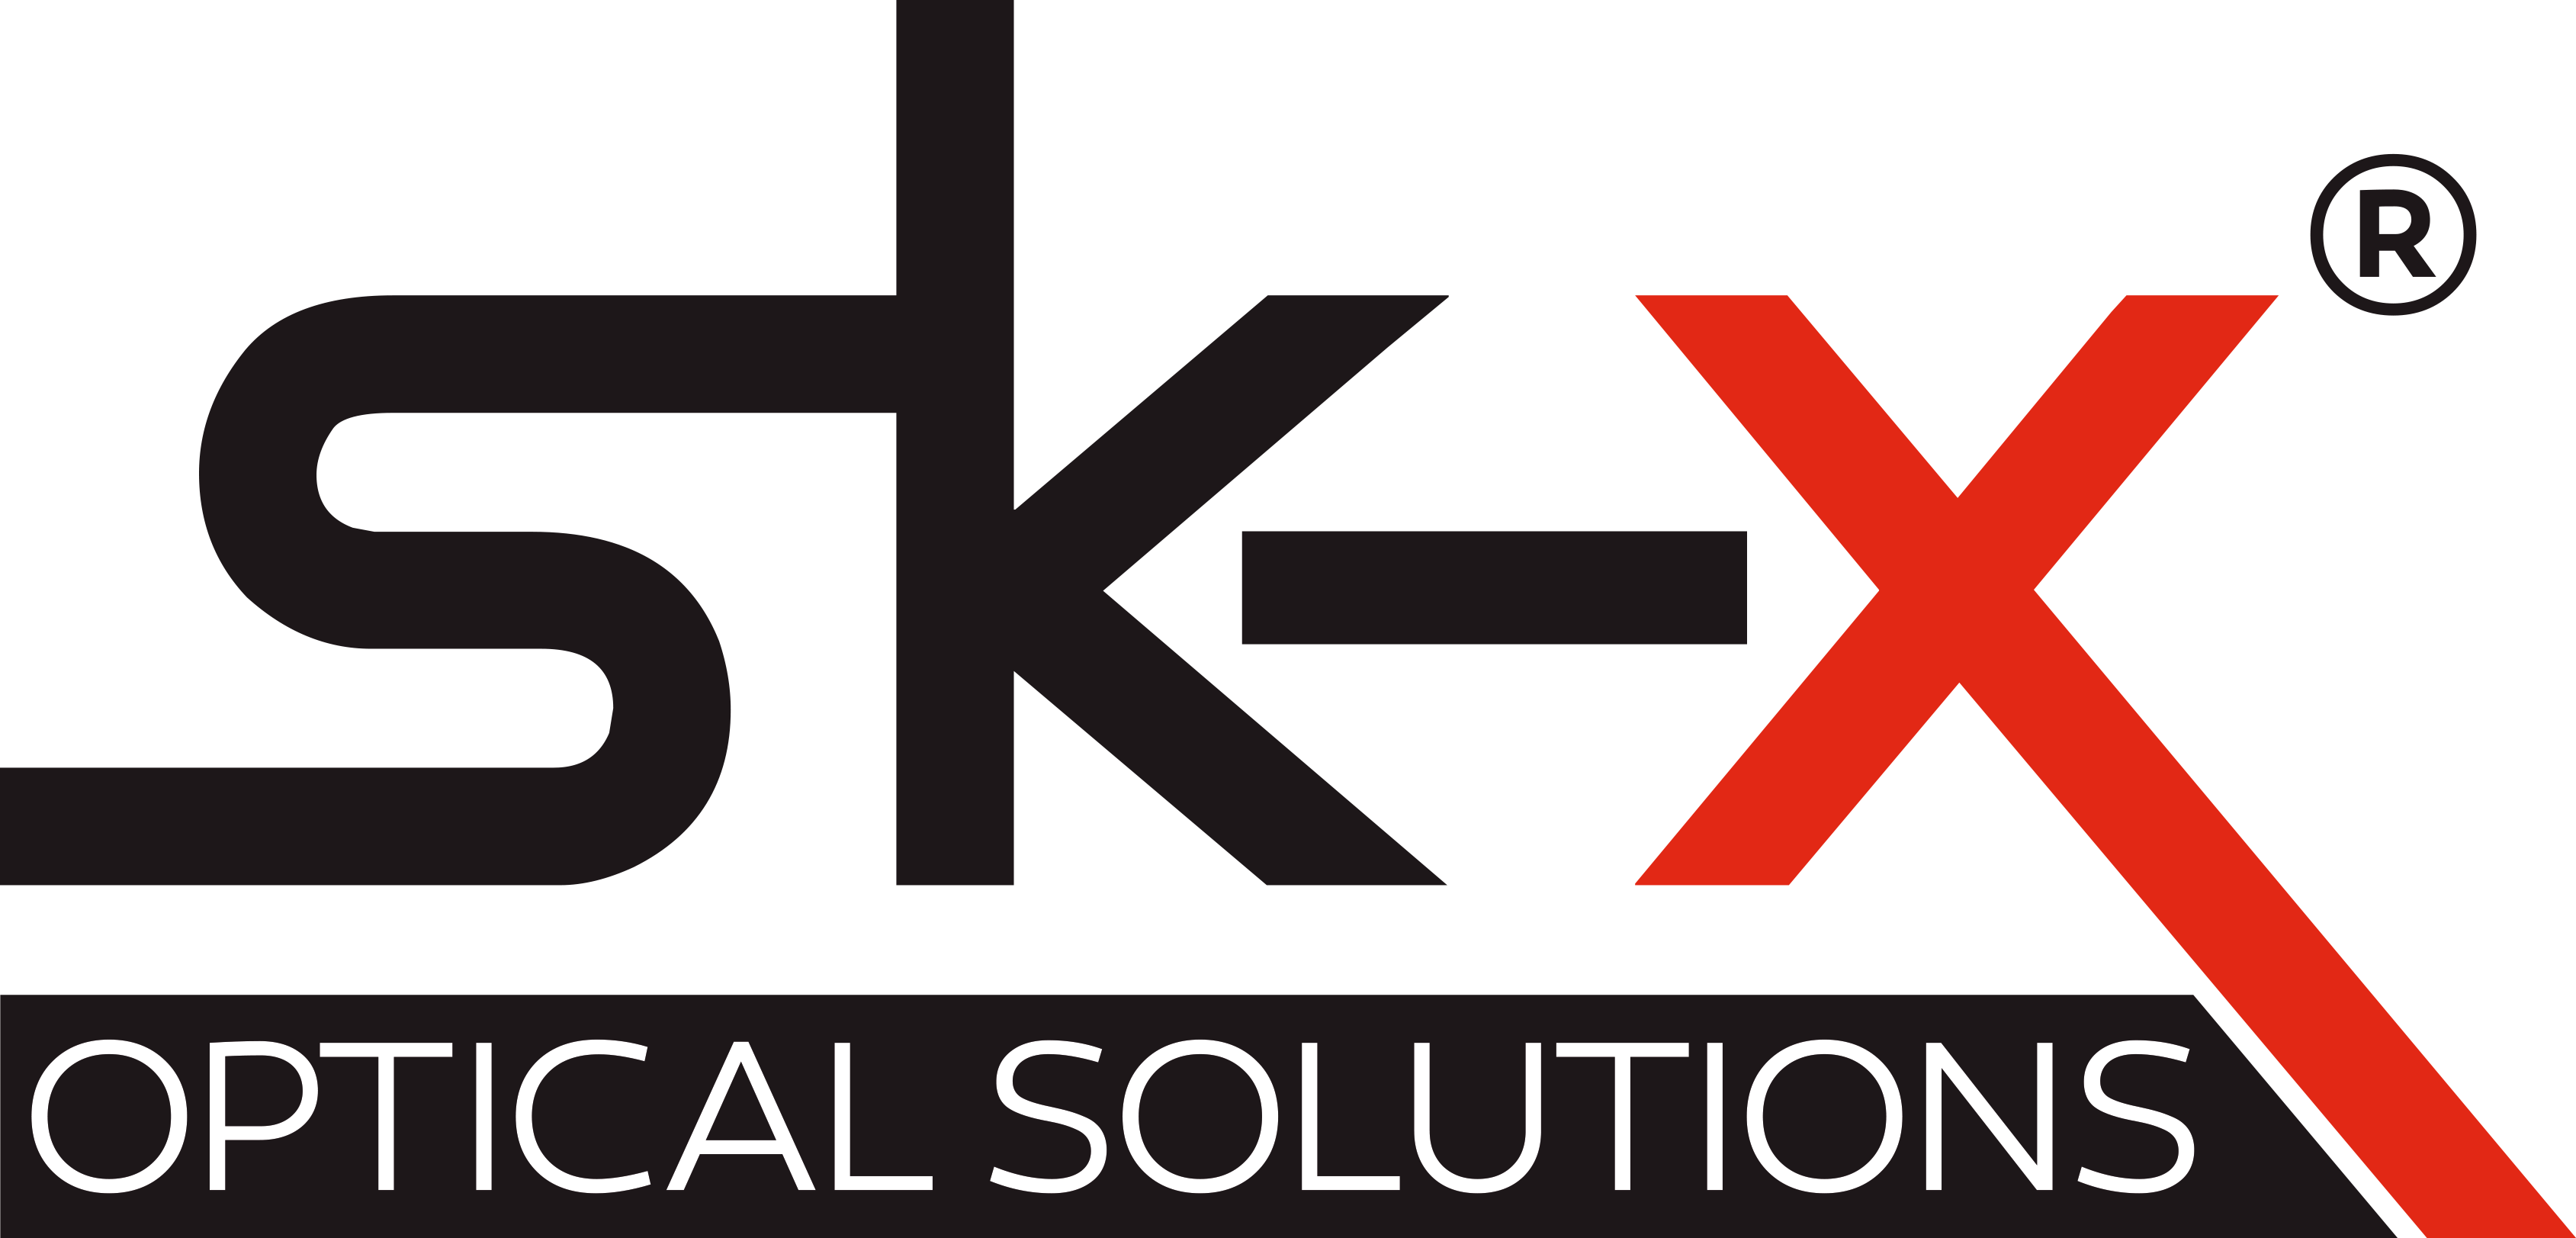 EN: SK-X® optical solutions GmbH